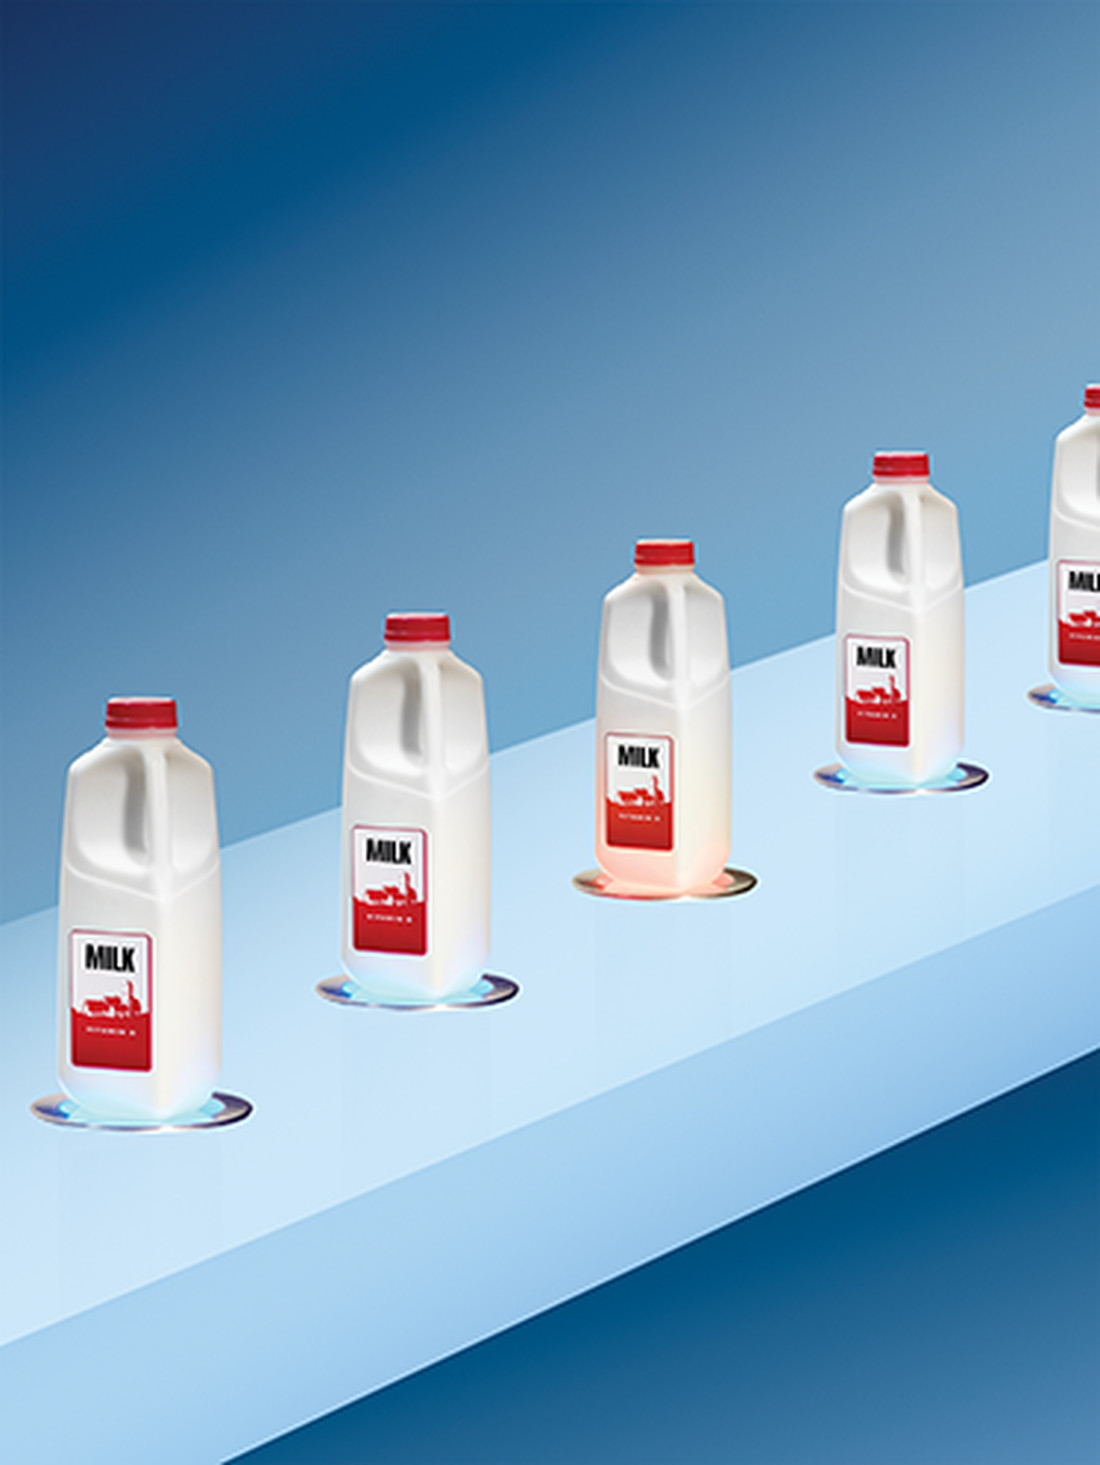 Line of milk bottles with one showing itself as being spoiled